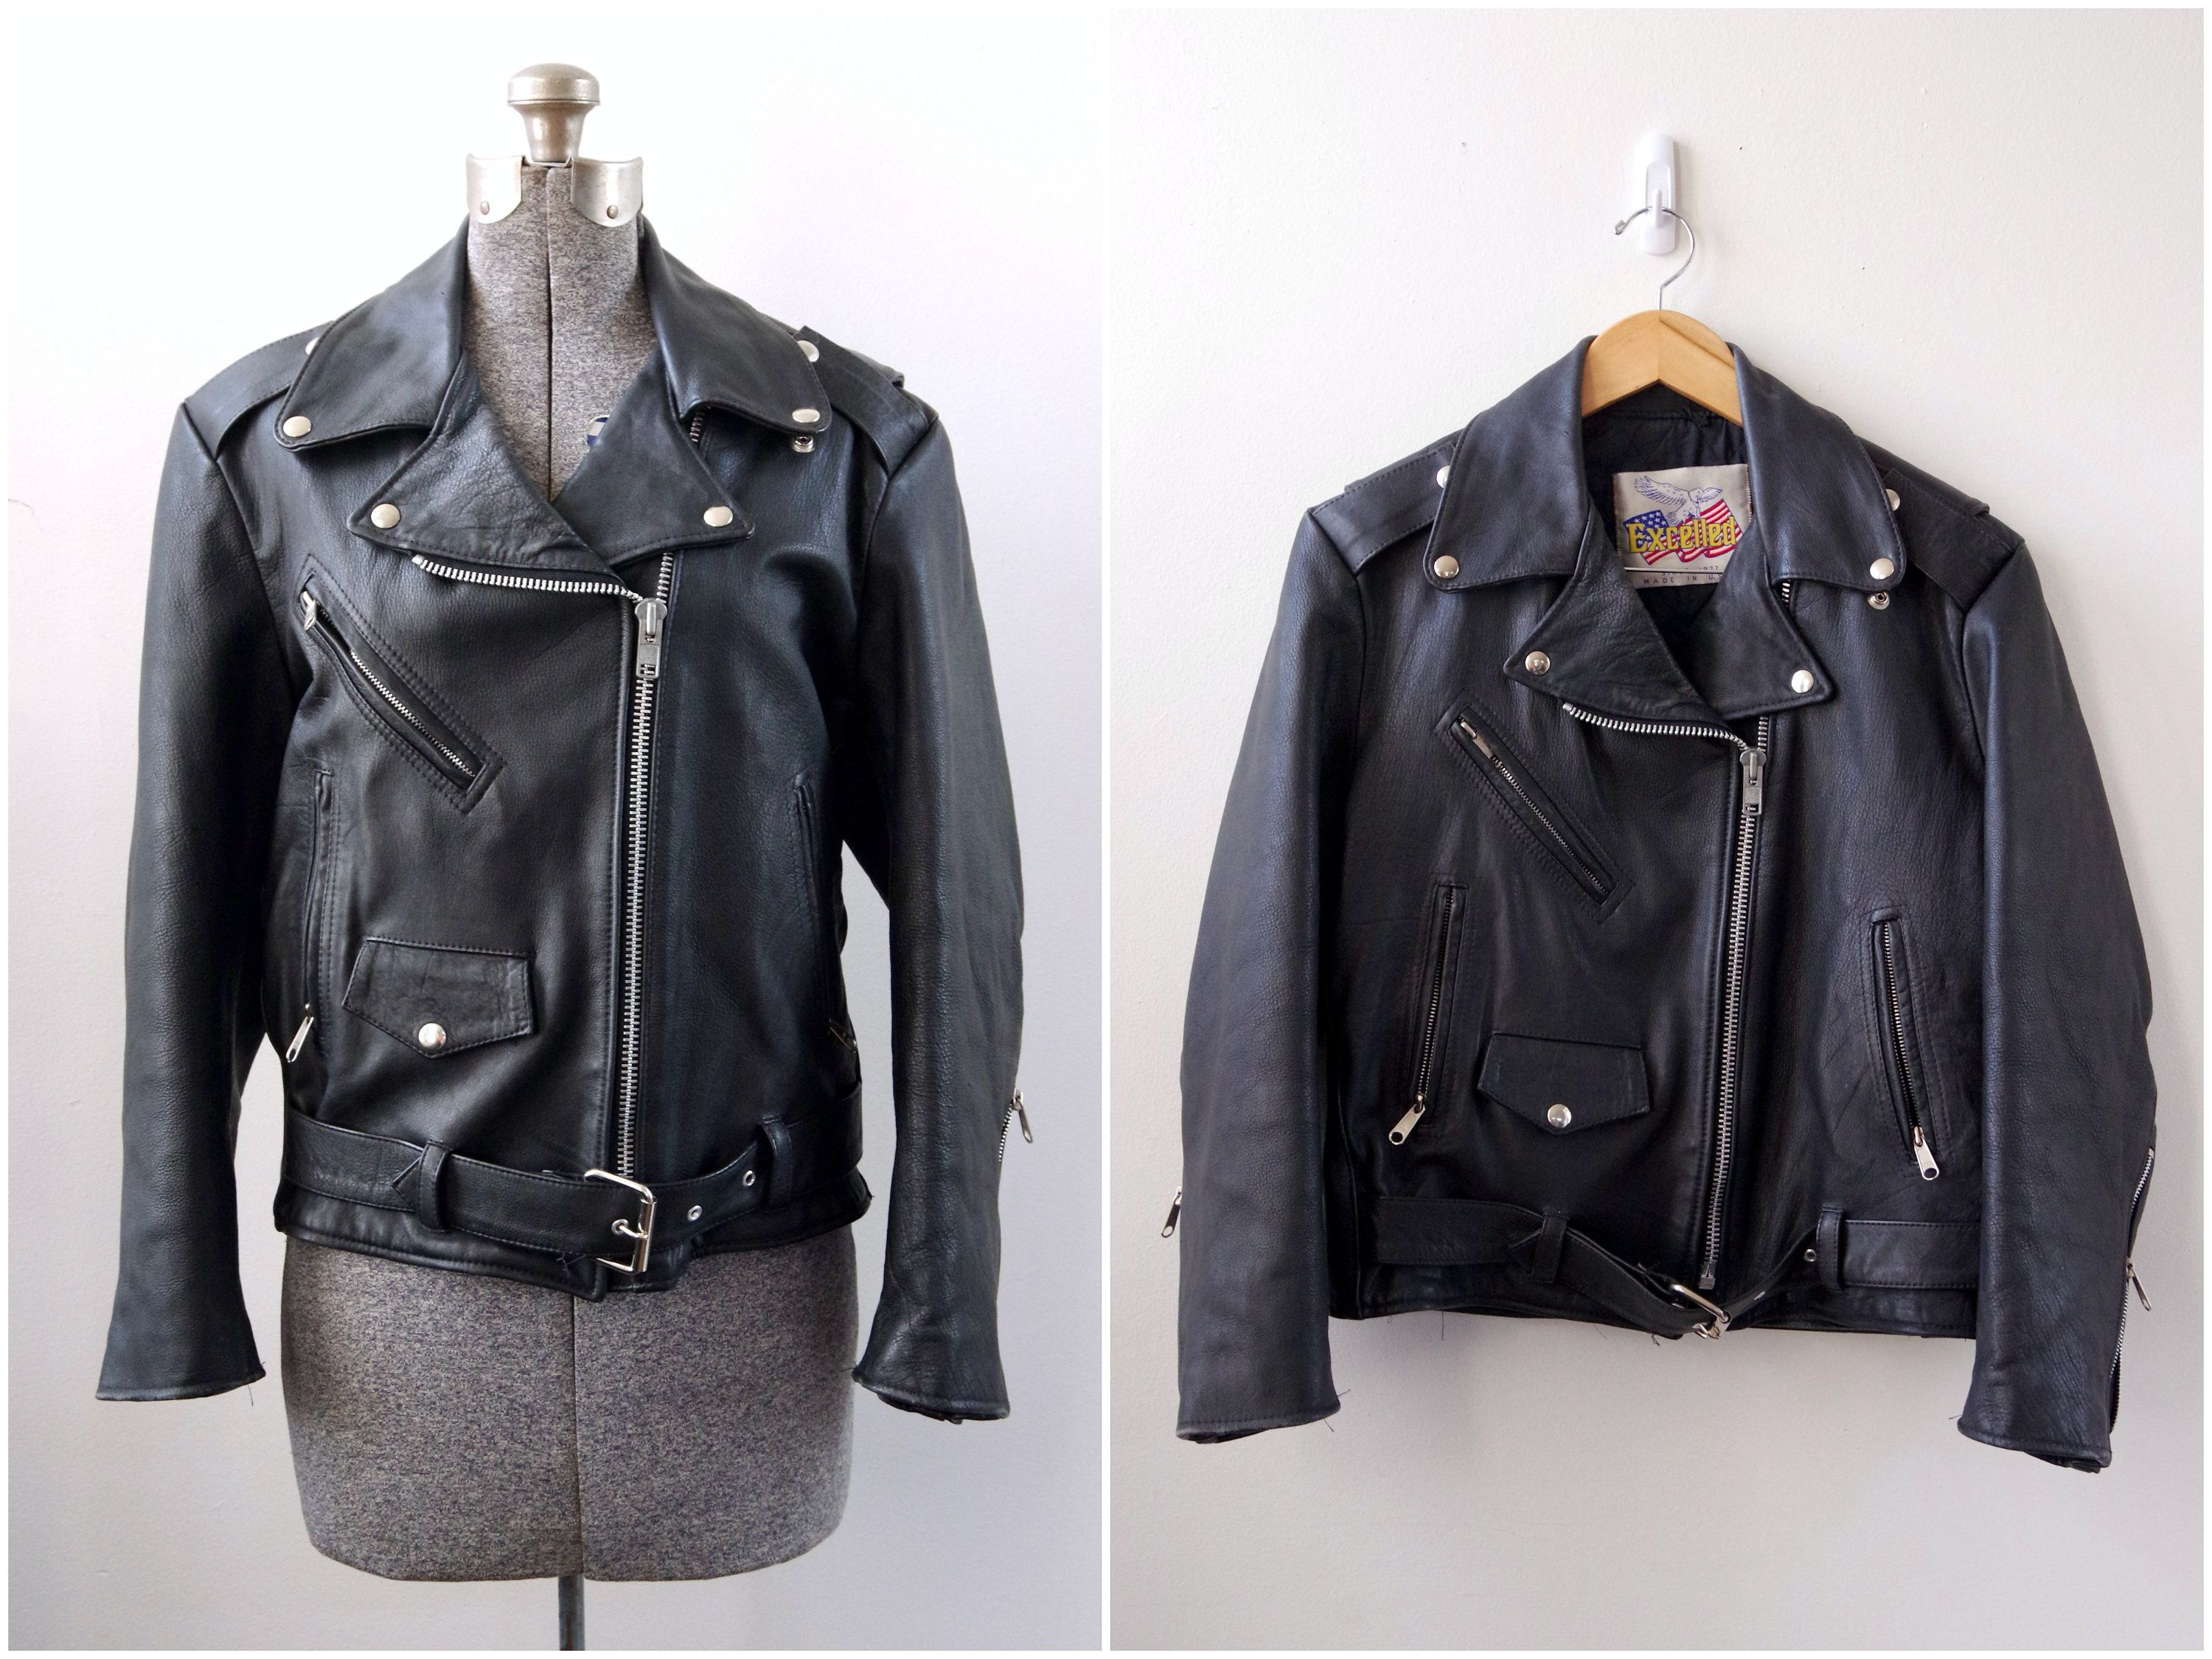 1980s Excelled Black Leather Motorcycle Jacket Size 12 Made Etsy Leather Motorcycle Jacket Black Leather Motorcycle Jacket Jackets [ 2250 x 3000 Pixel ]